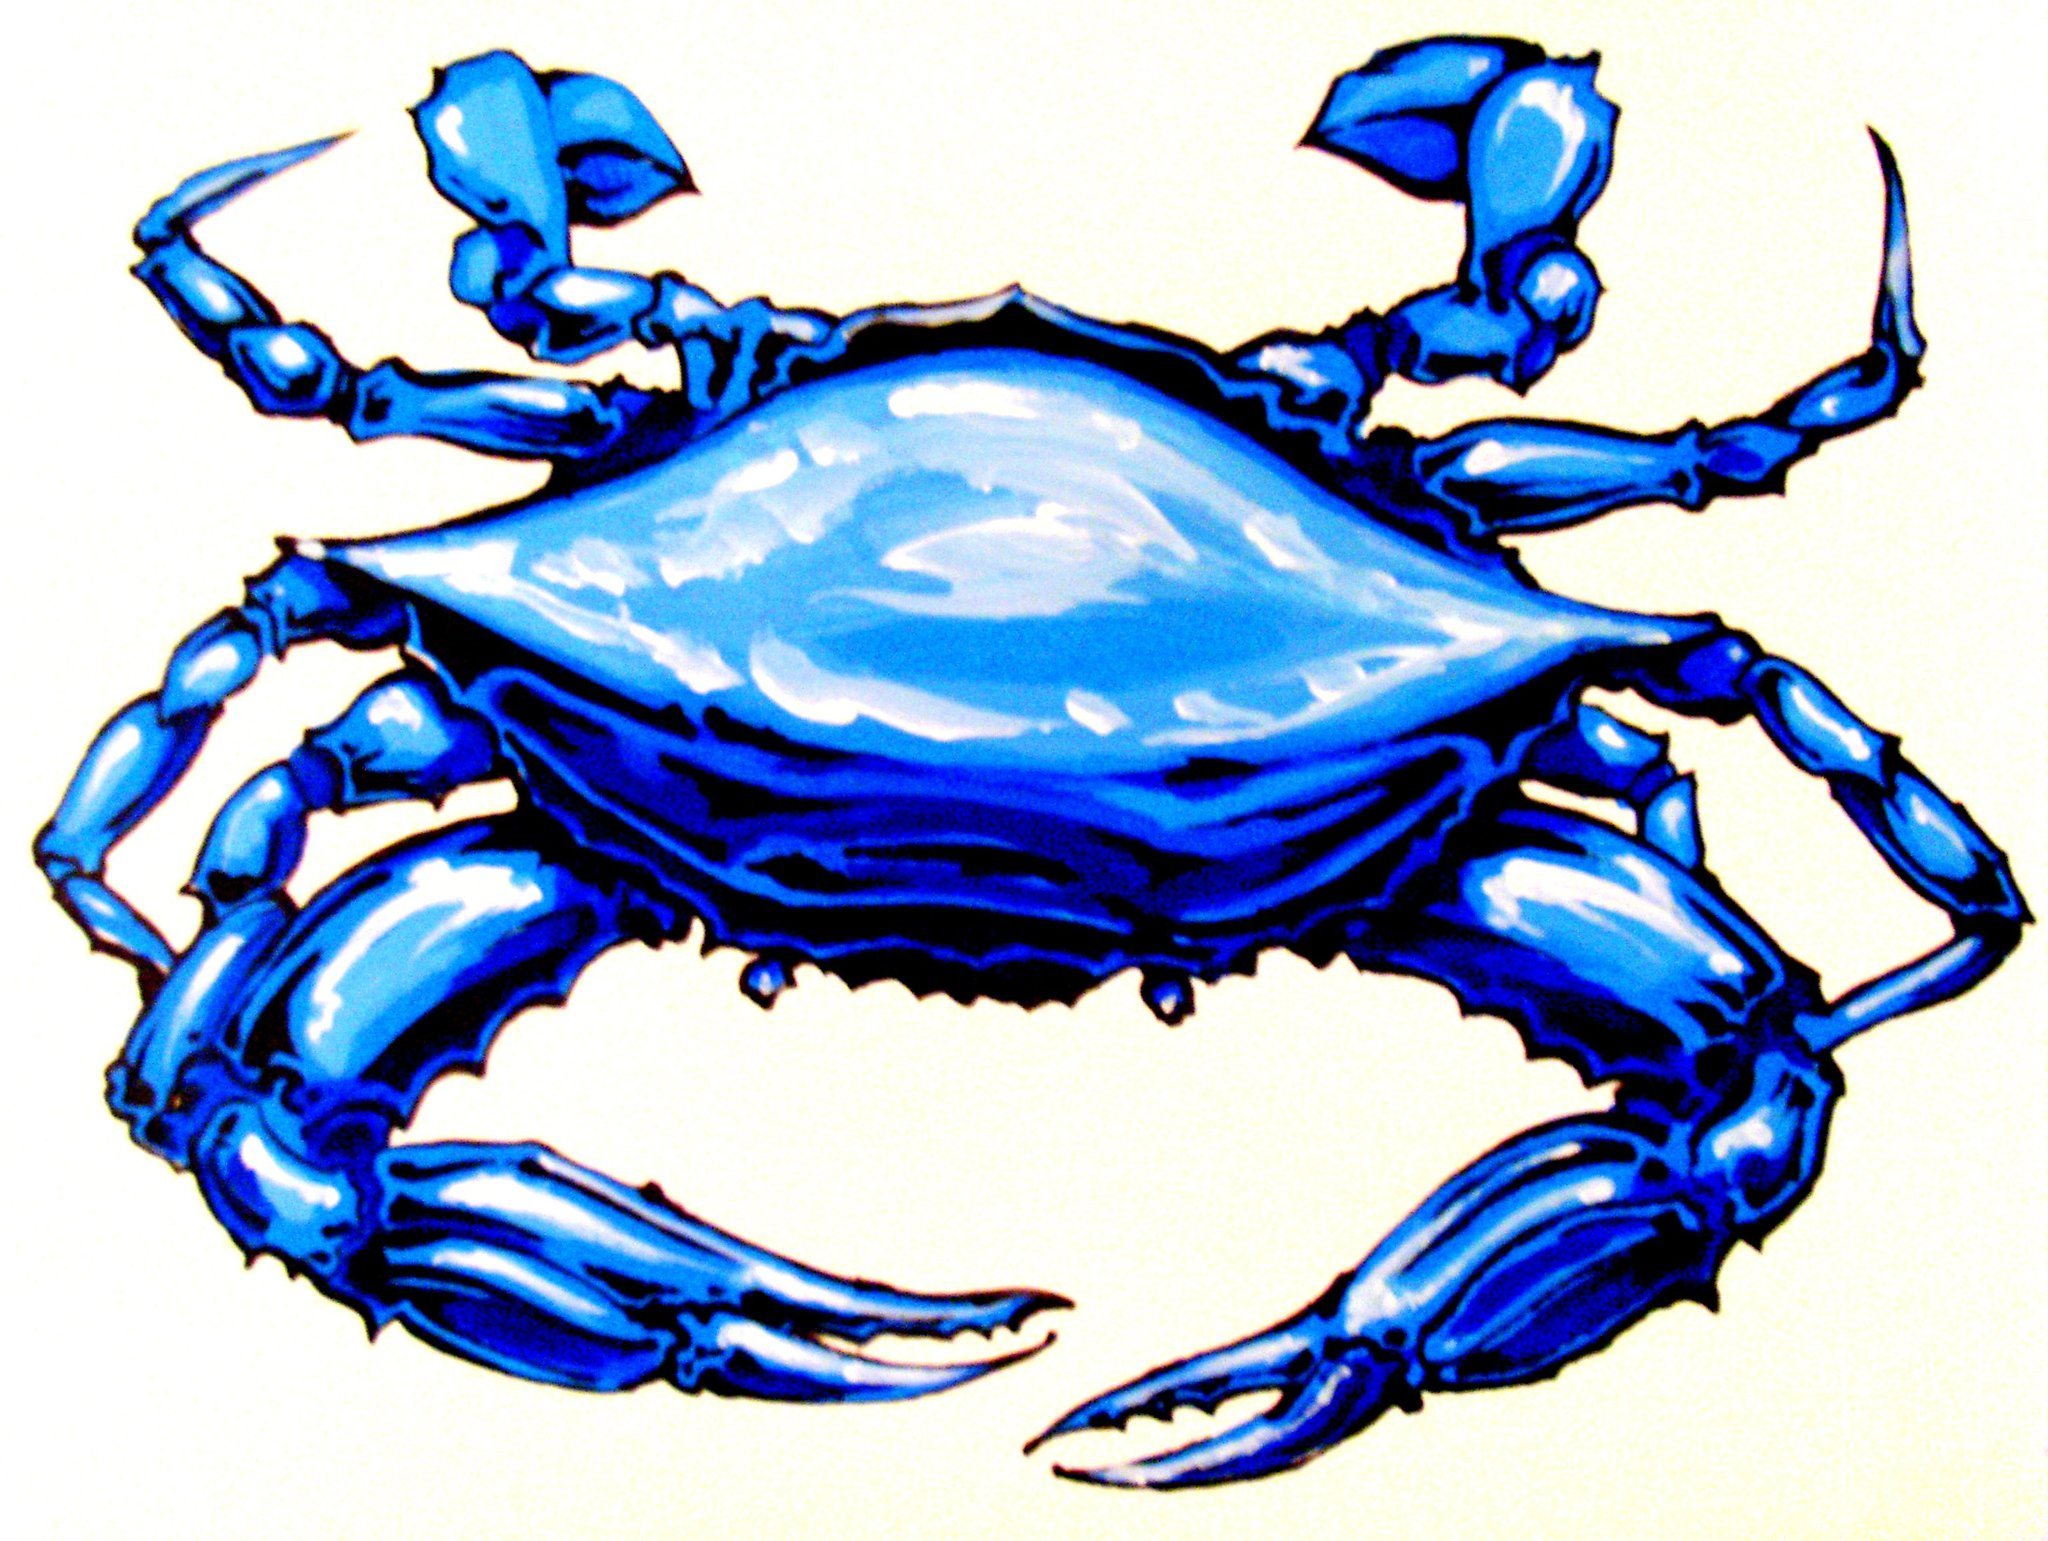 Blue Crab Painting   Clipart library - F-Blue Crab Painting   Clipart library - Free Clipart Images-5